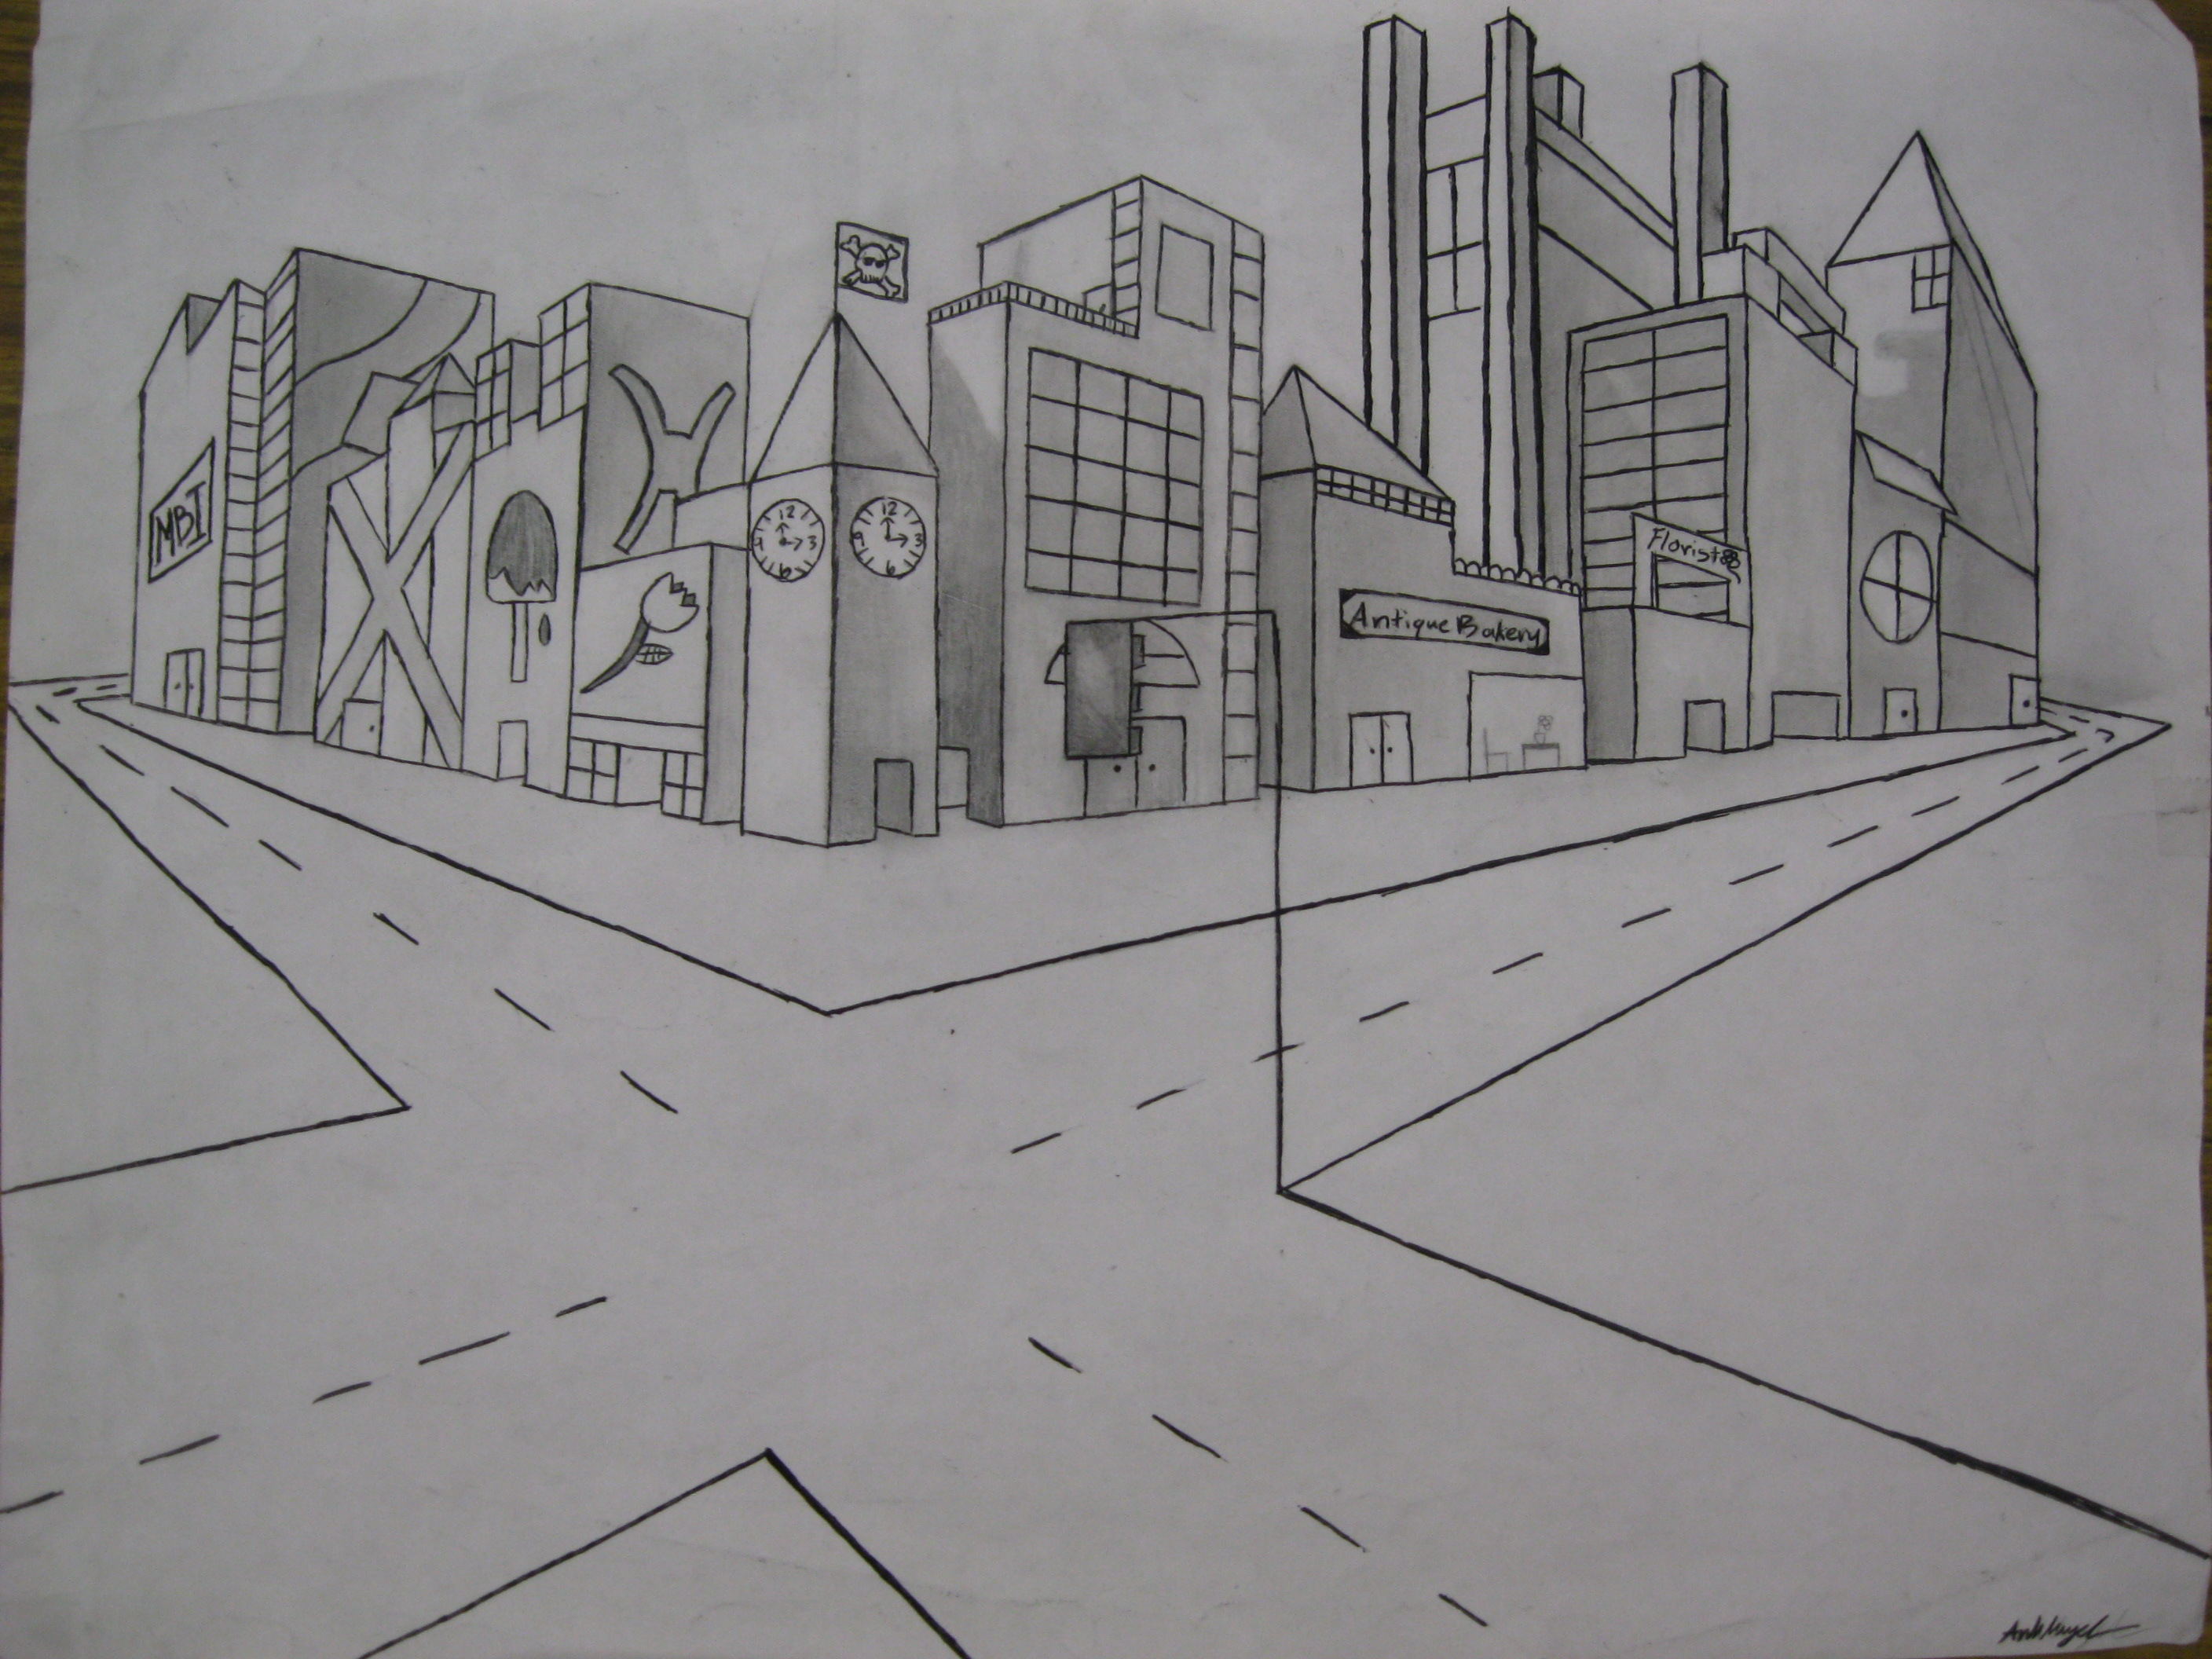 2 Point Perspective Building Drawing http://s2490331.edublogs.org/2012/05/04/perspective-in-vanishing-point-mode/